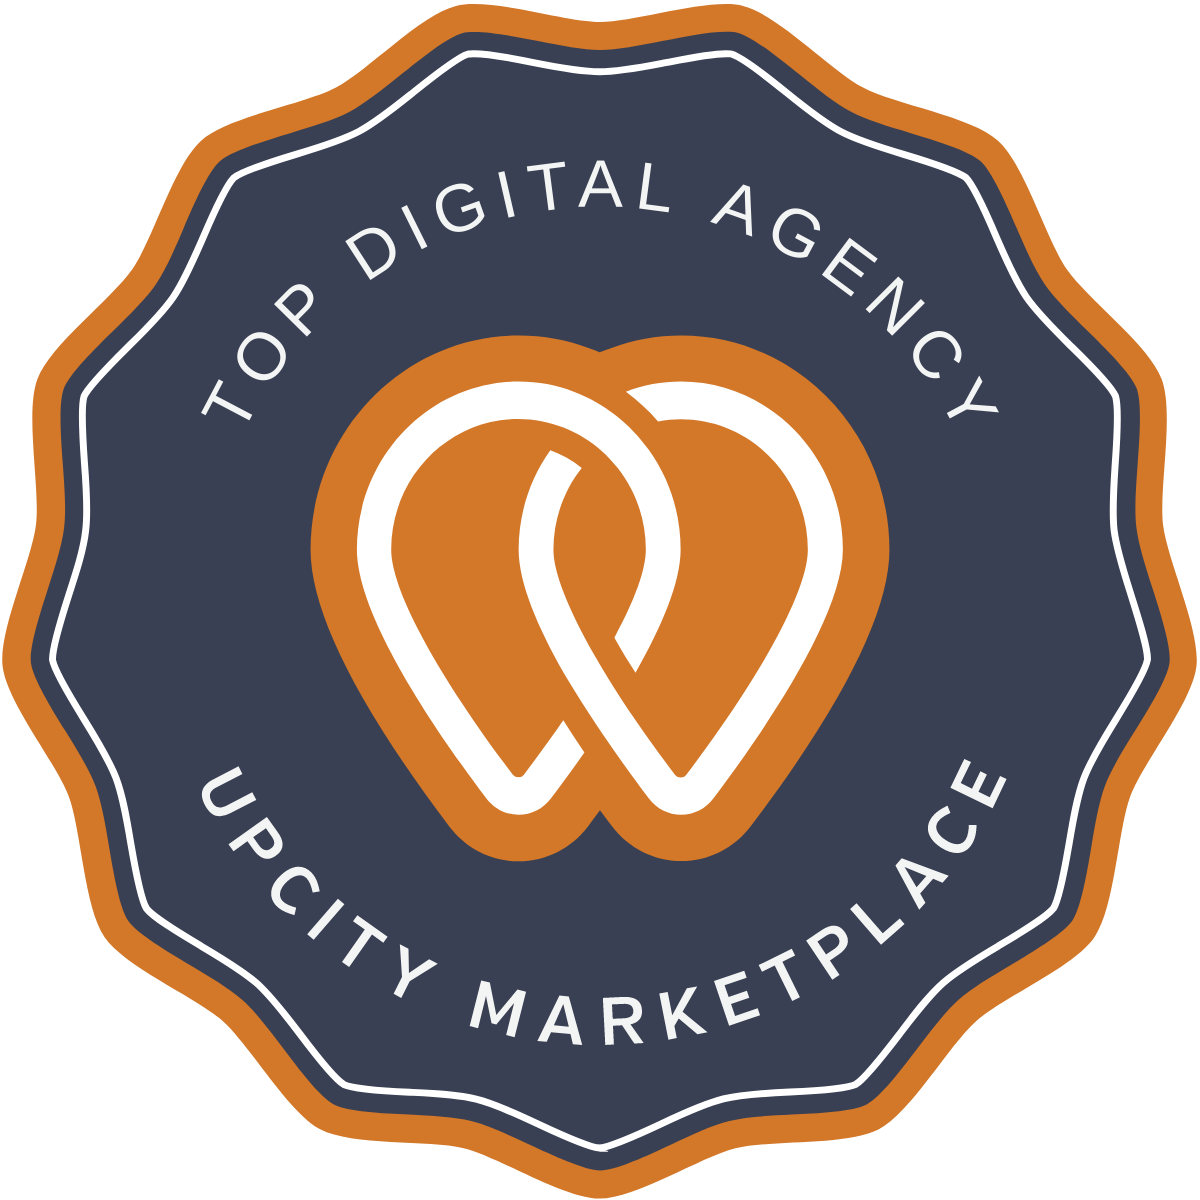 TOP DIGITAL AGENCY